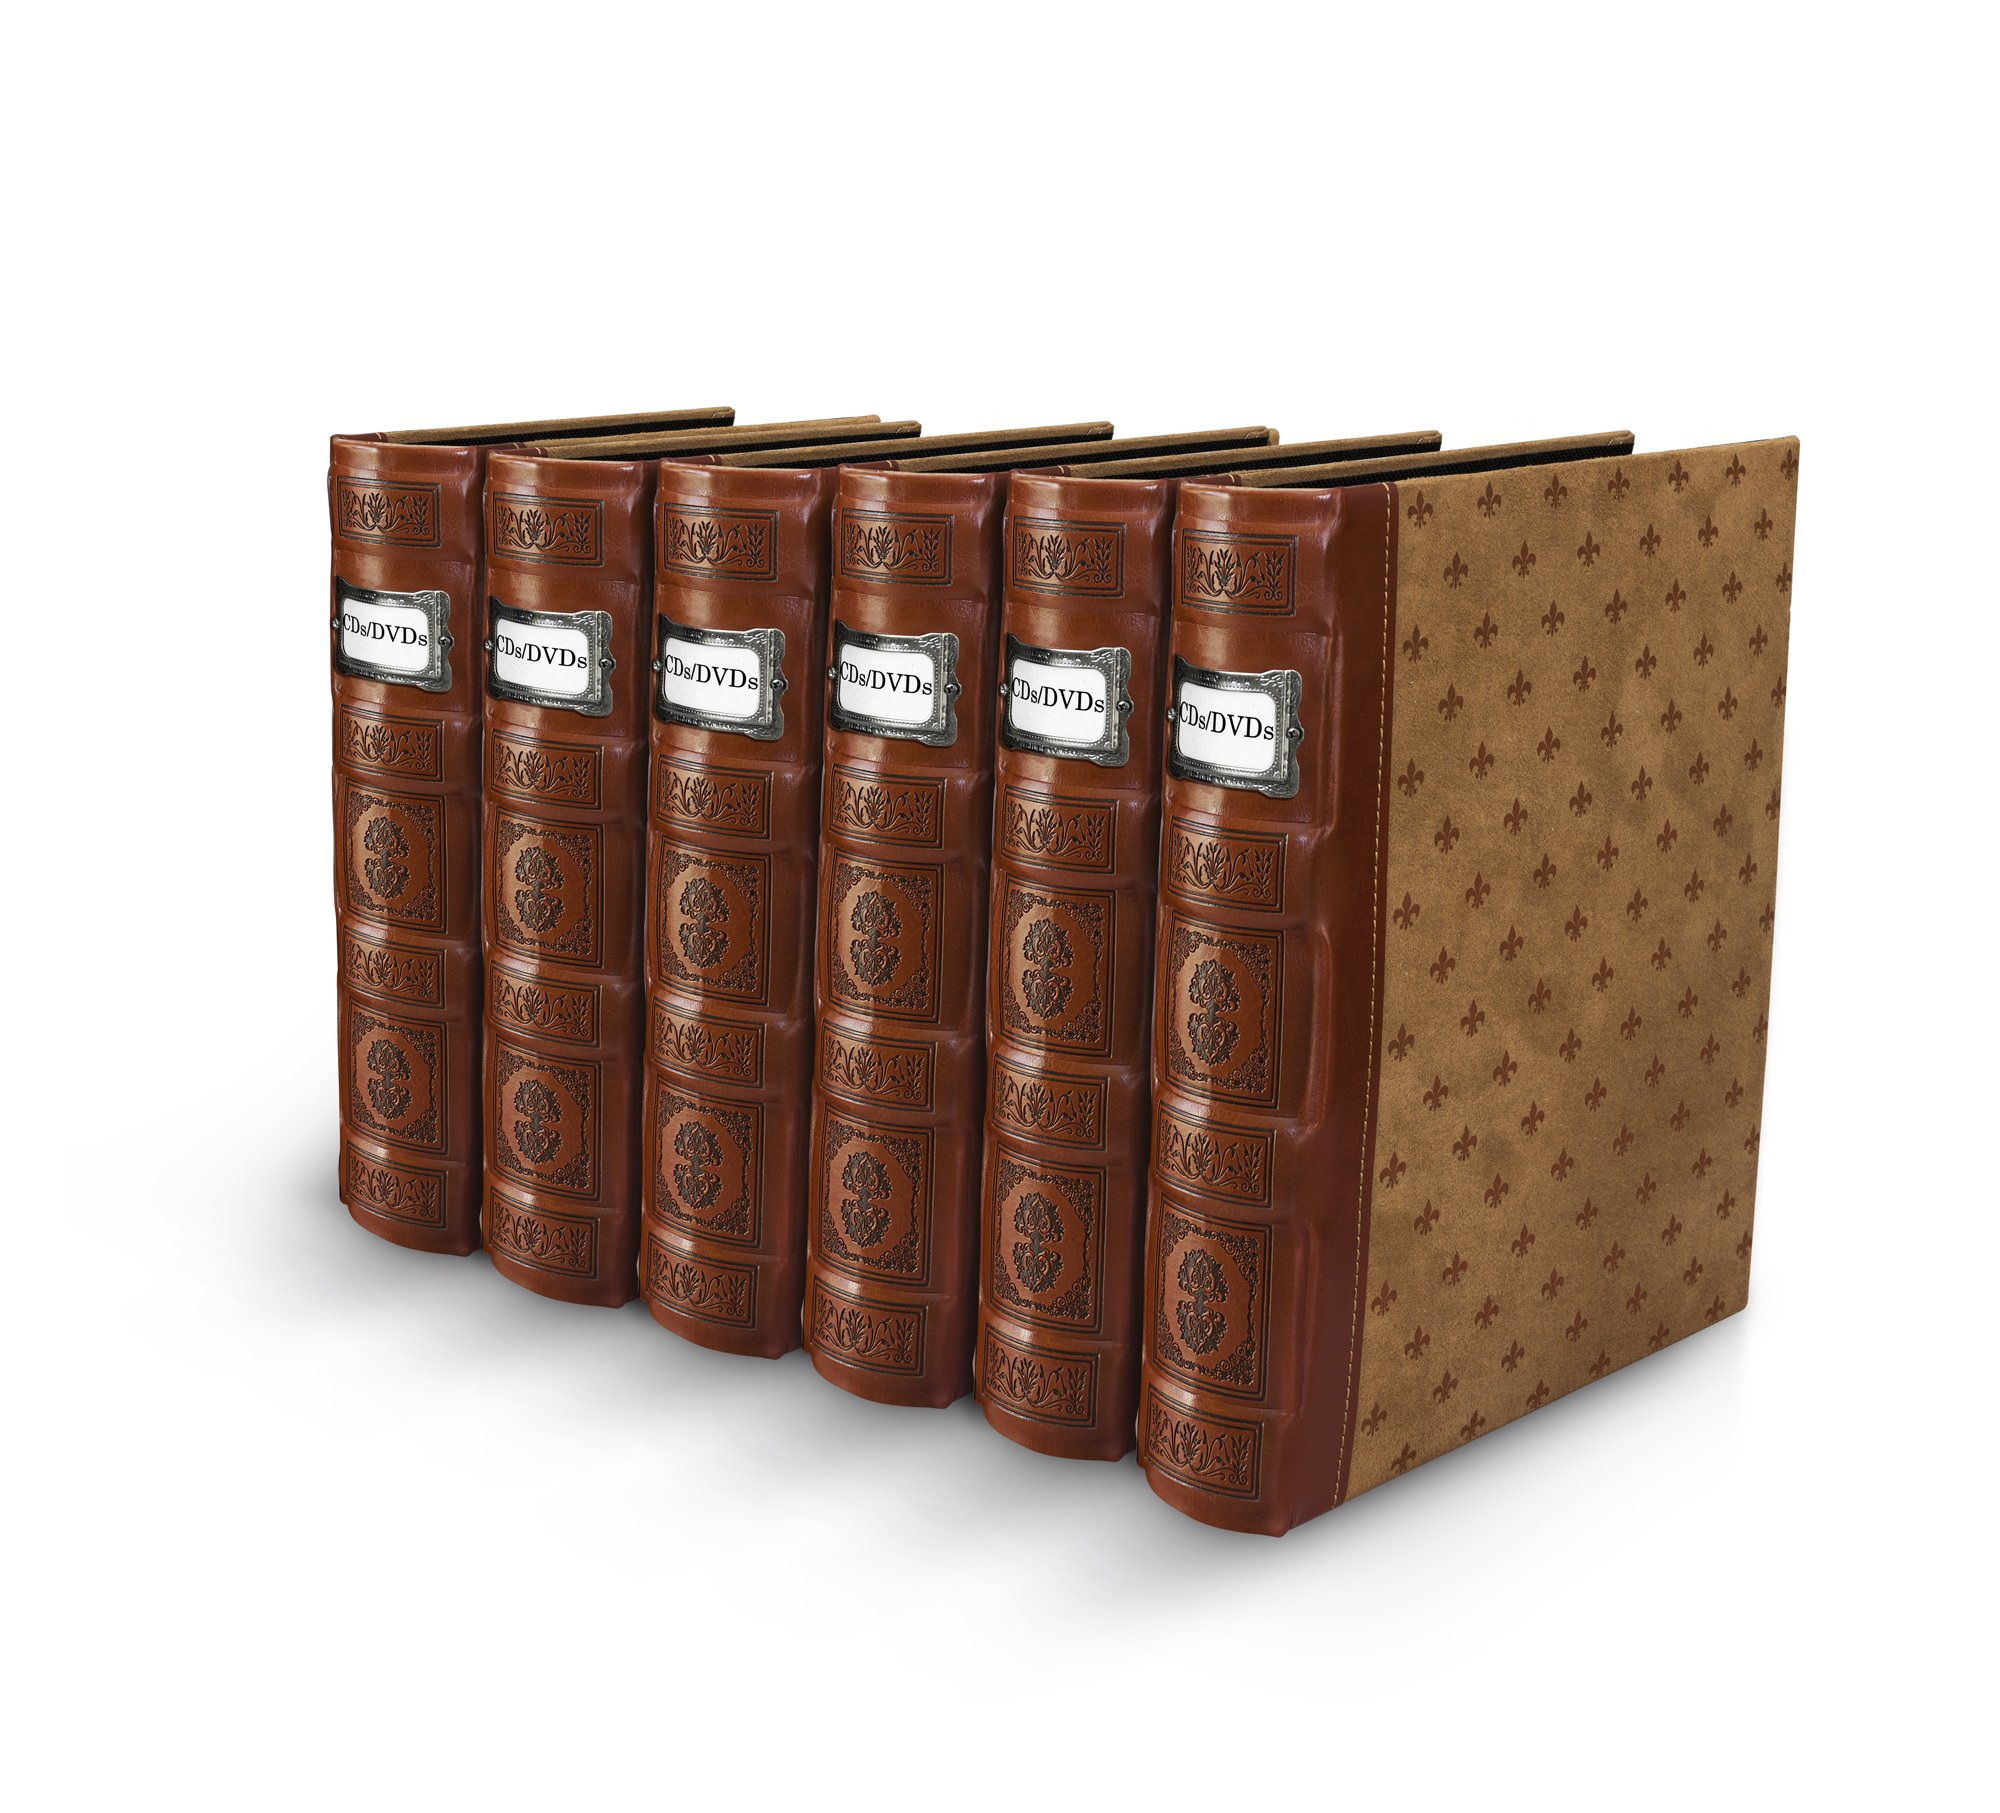 Bellagio-Italia Tuscany Cognac CD/DVD Storage Binder Holds 48 Discs 6-Pack